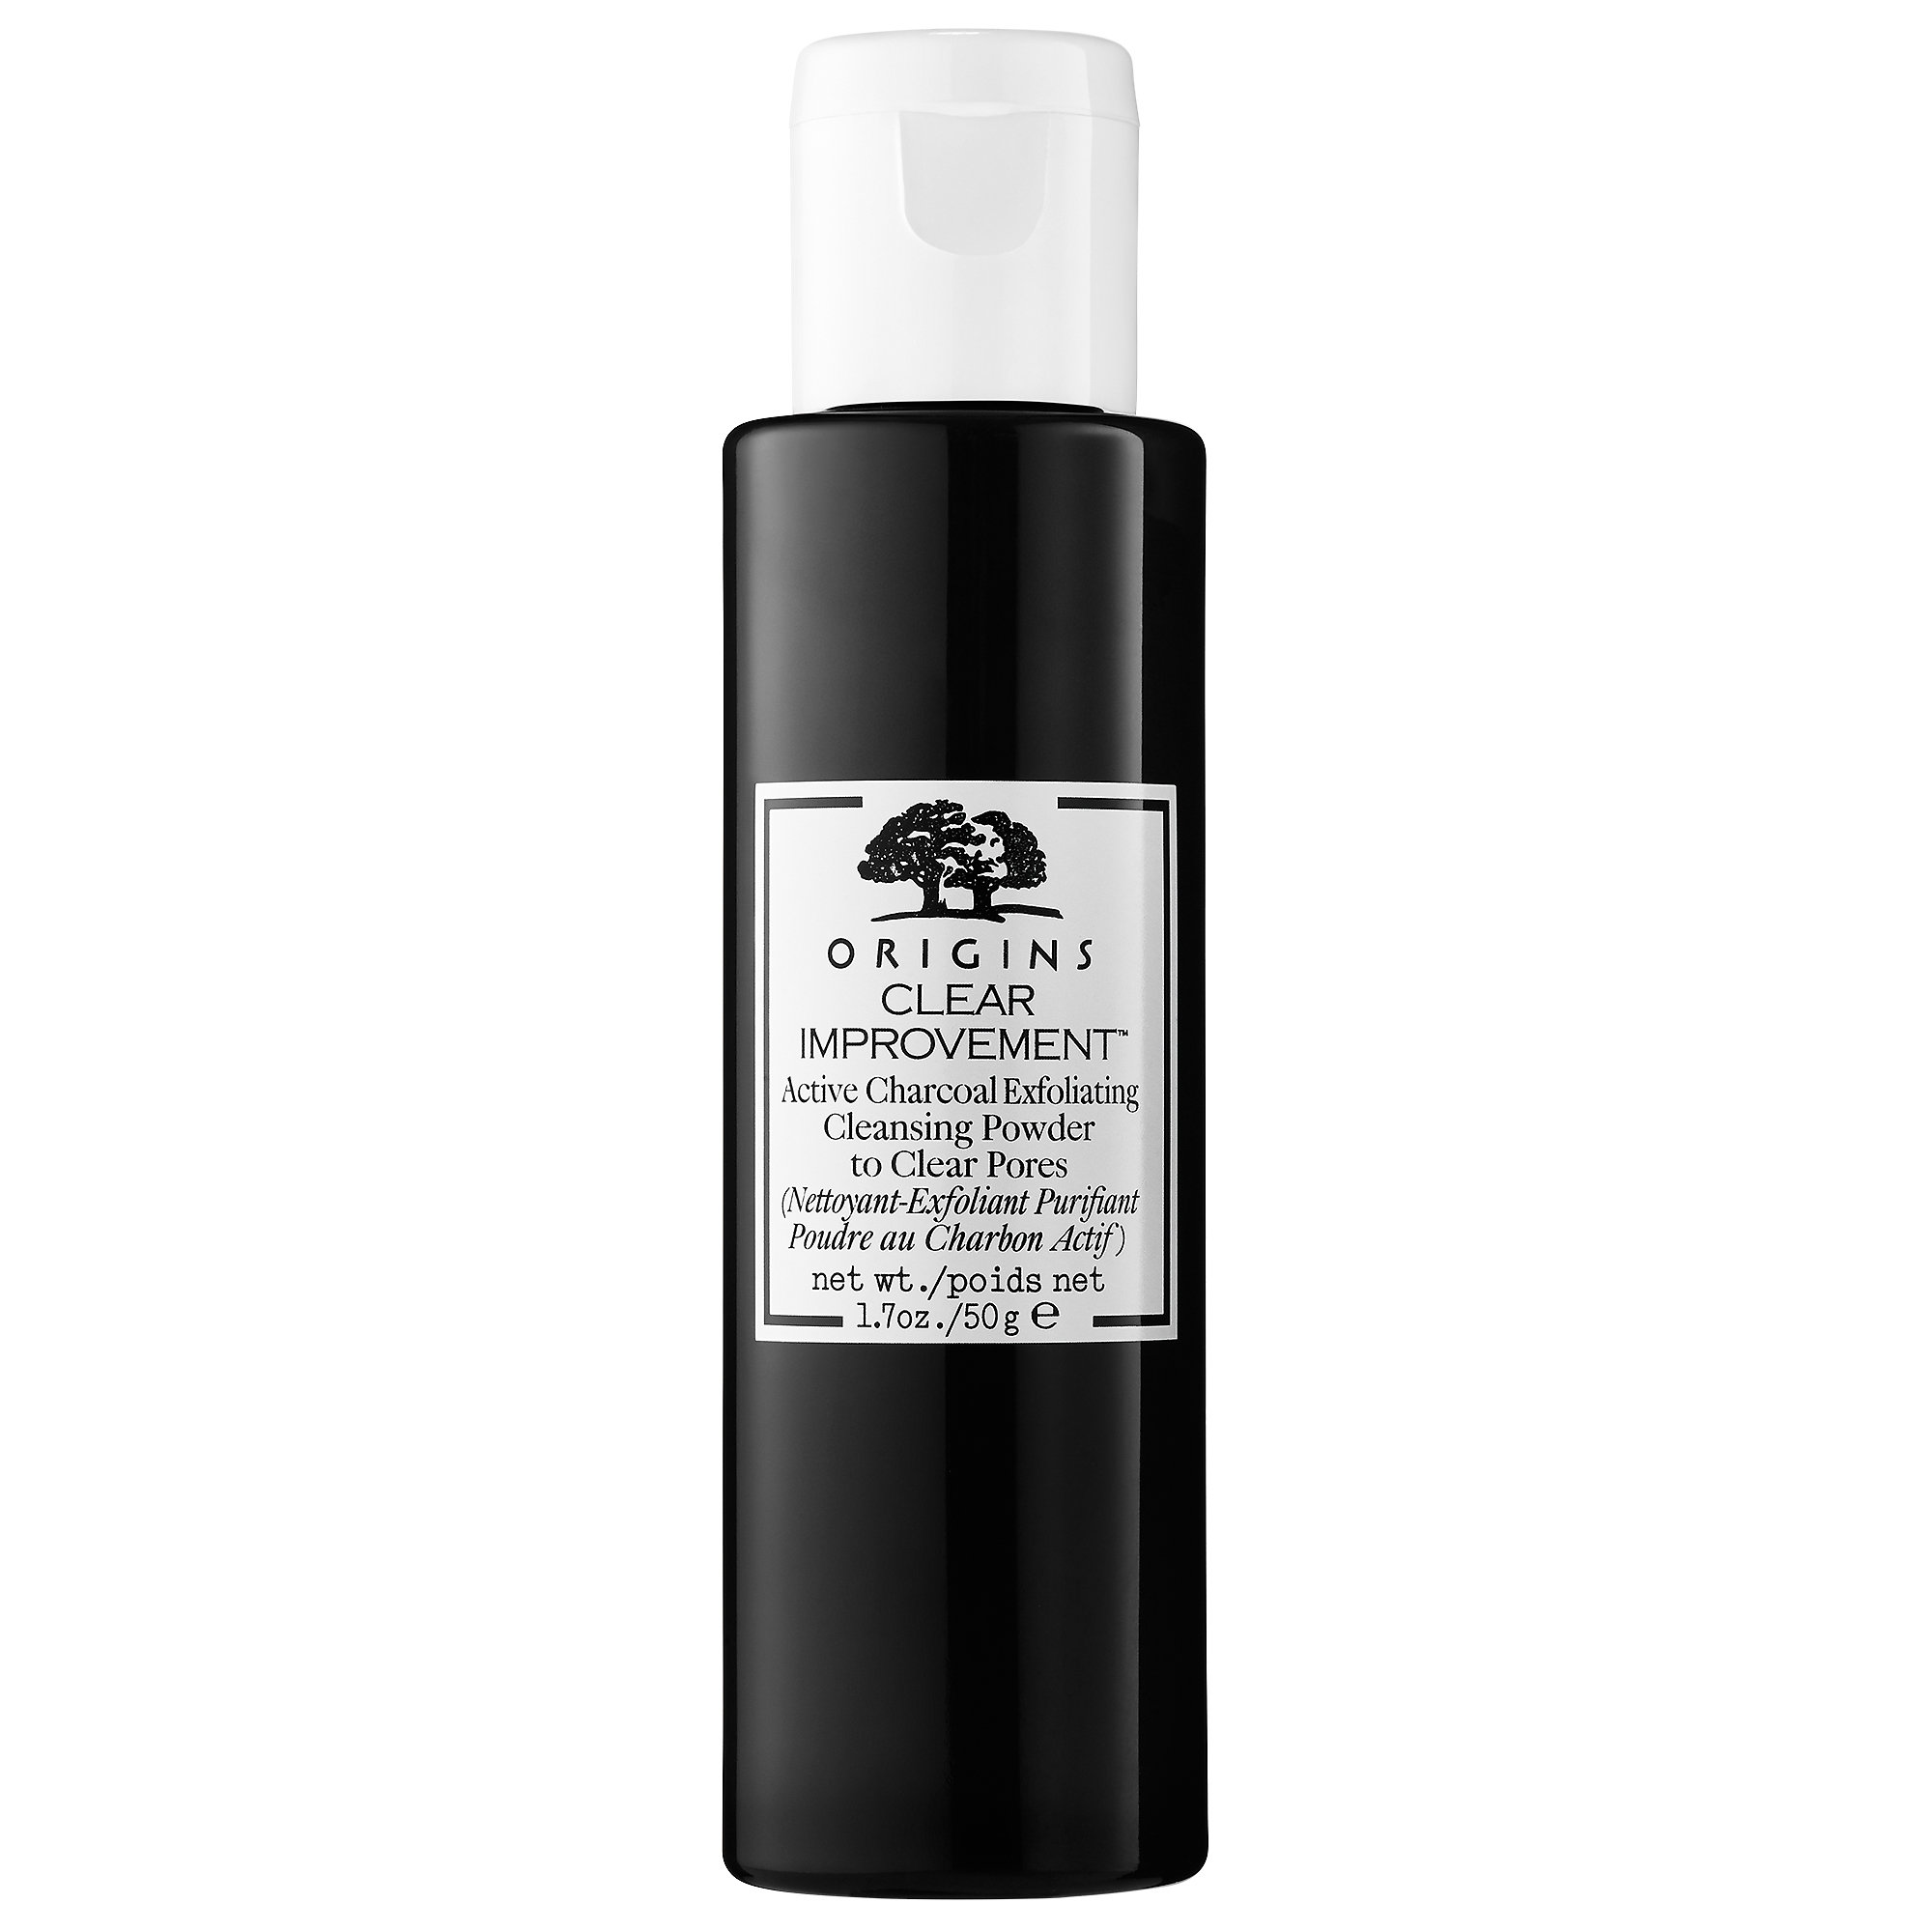 Origins Active Charcoal Exfoliating Cleansing Powder To Clear Pores ($30)